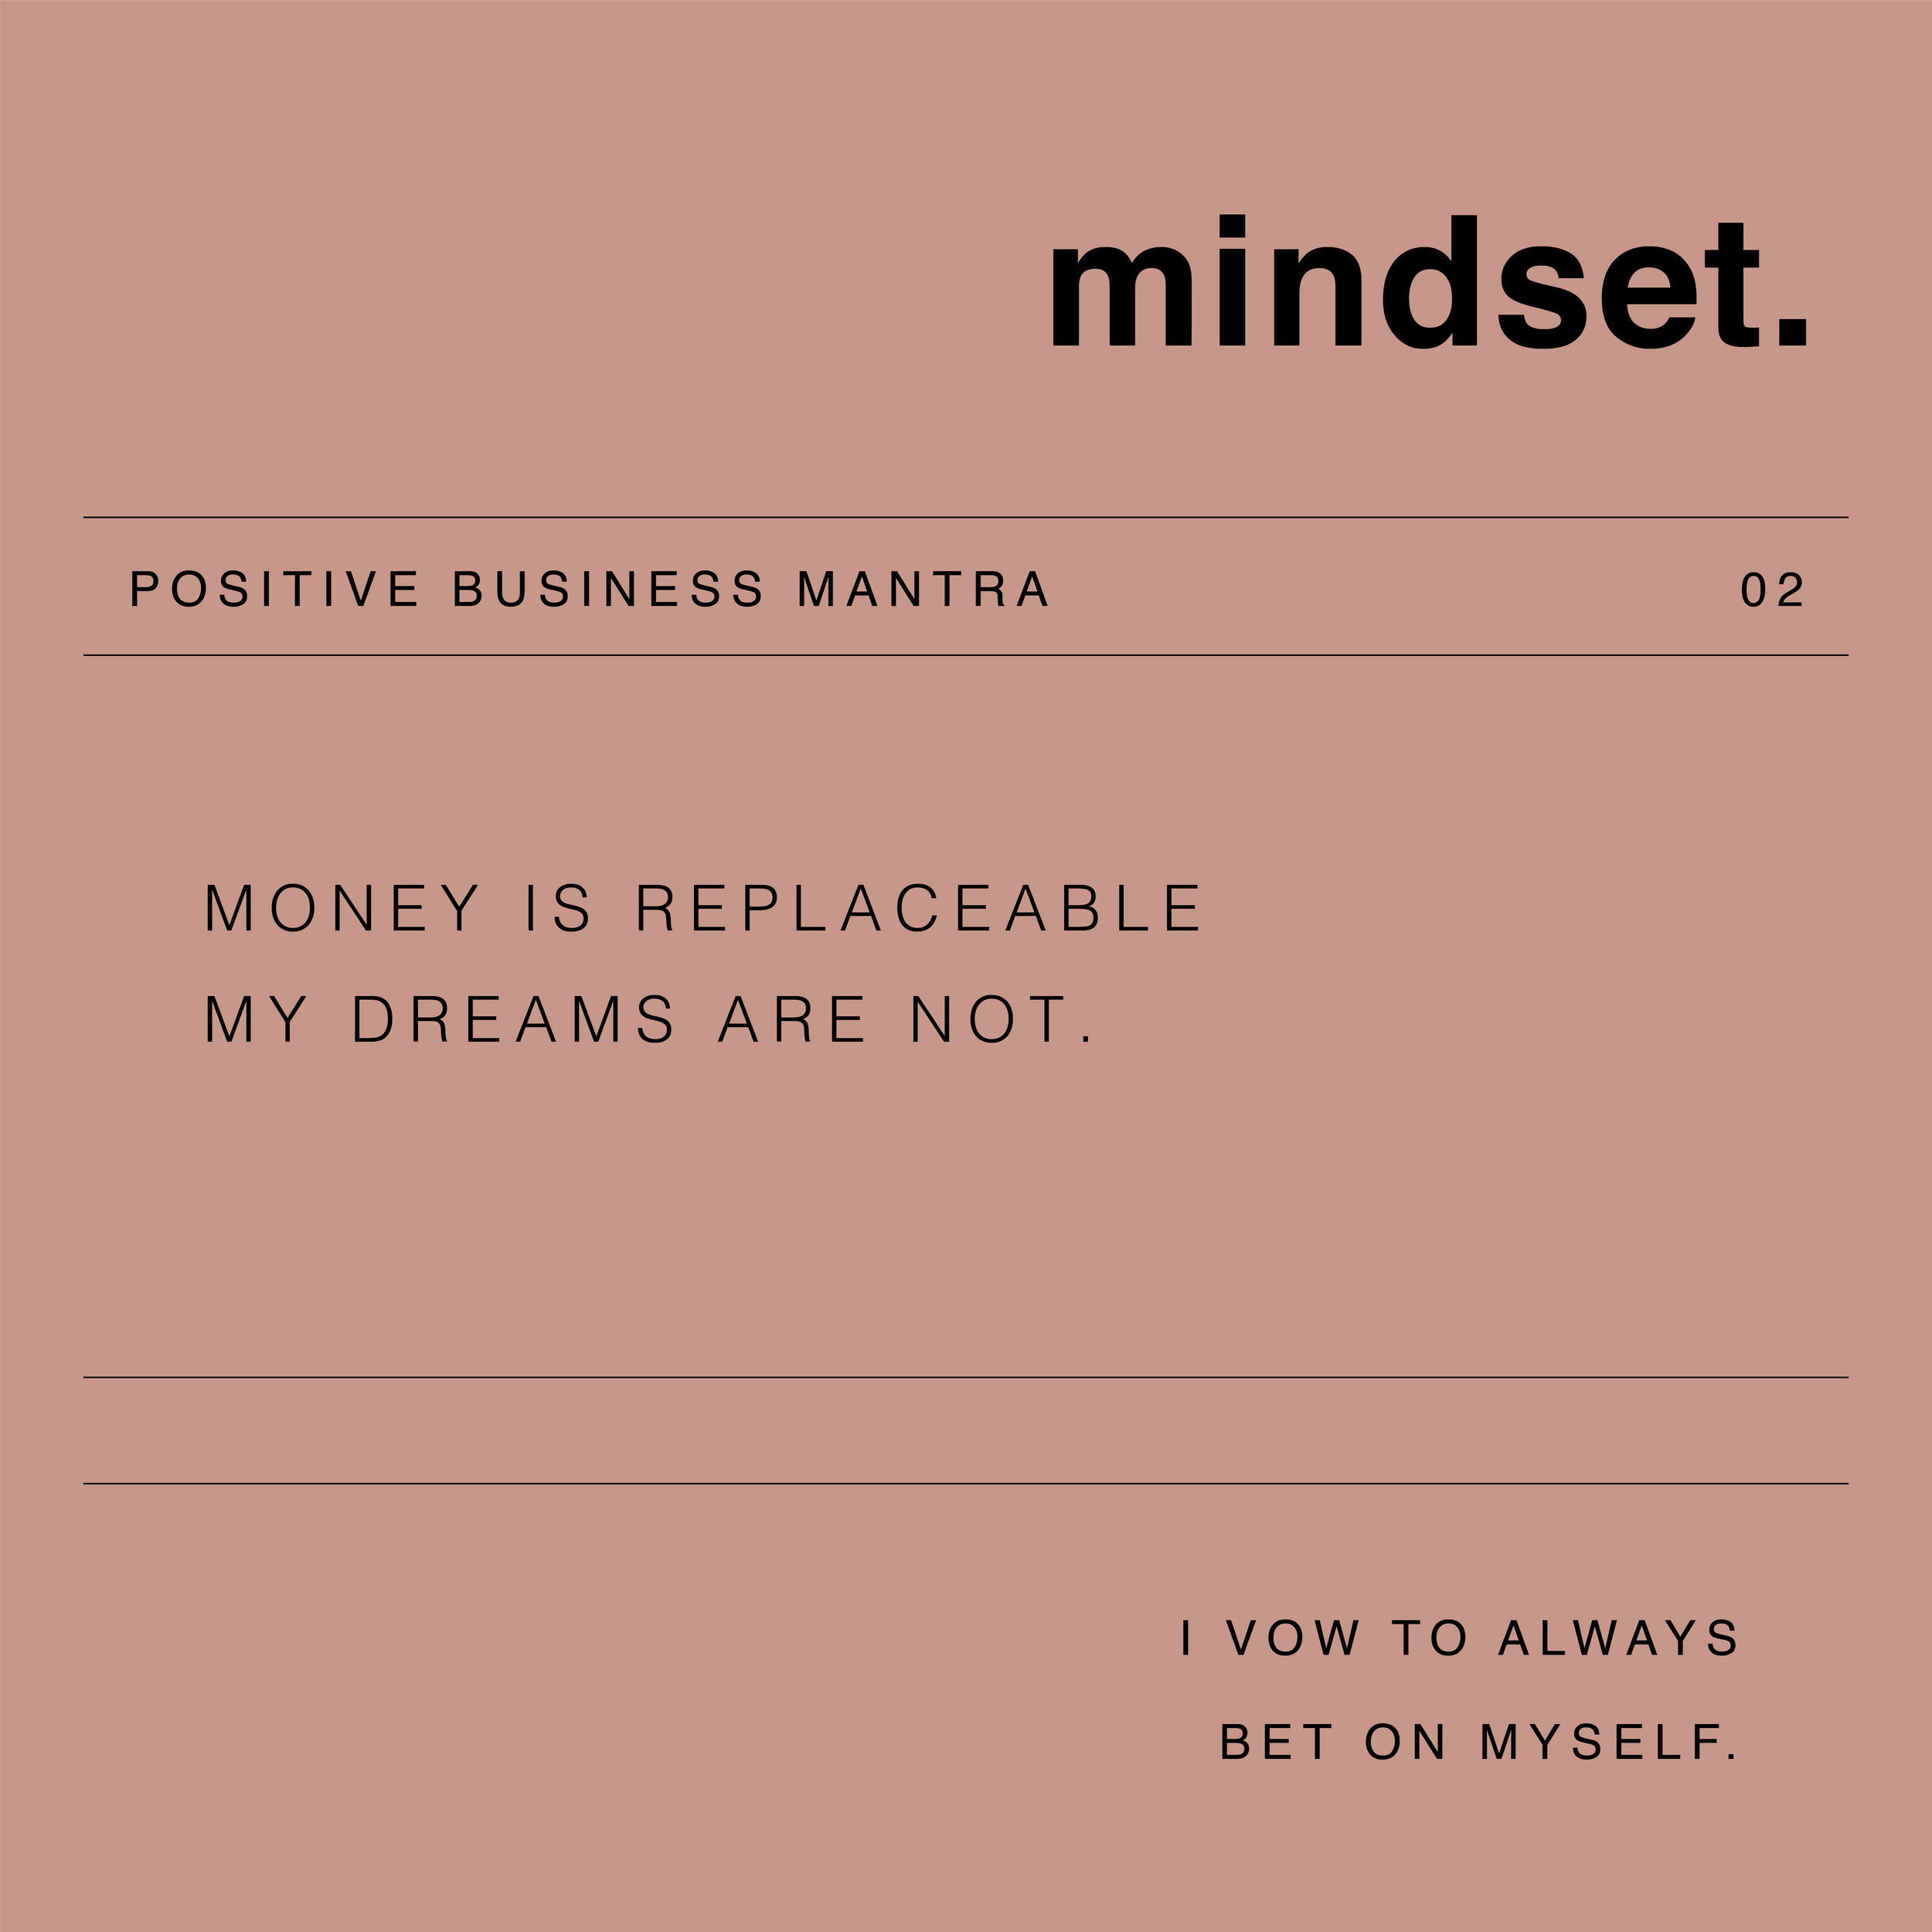 positivemantra-03.png